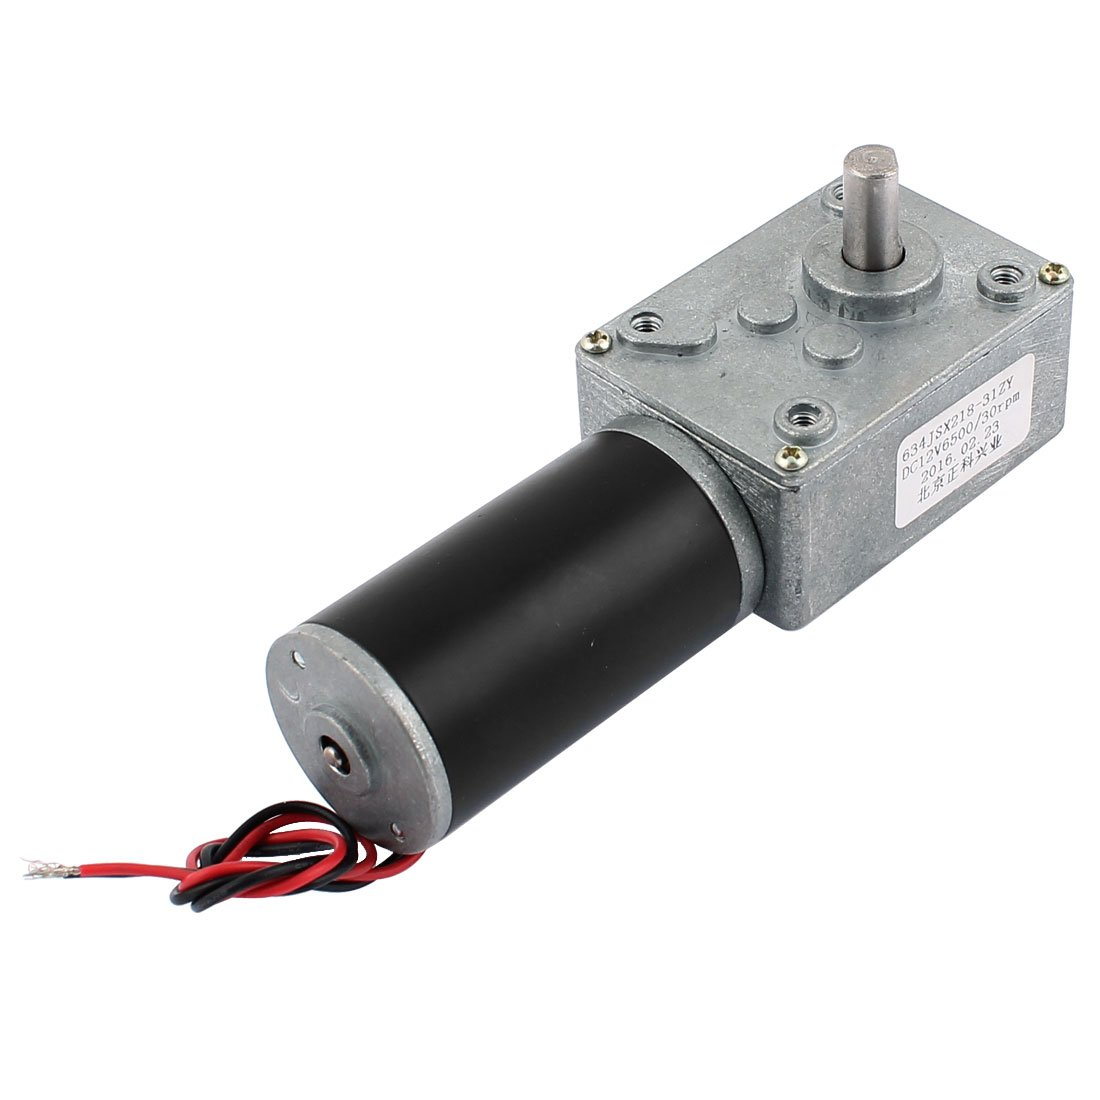 uxcell DC 12V 30RPM 8mmx14mm D-Shape Shaft Electric Power Turbo Worm Geared Motor